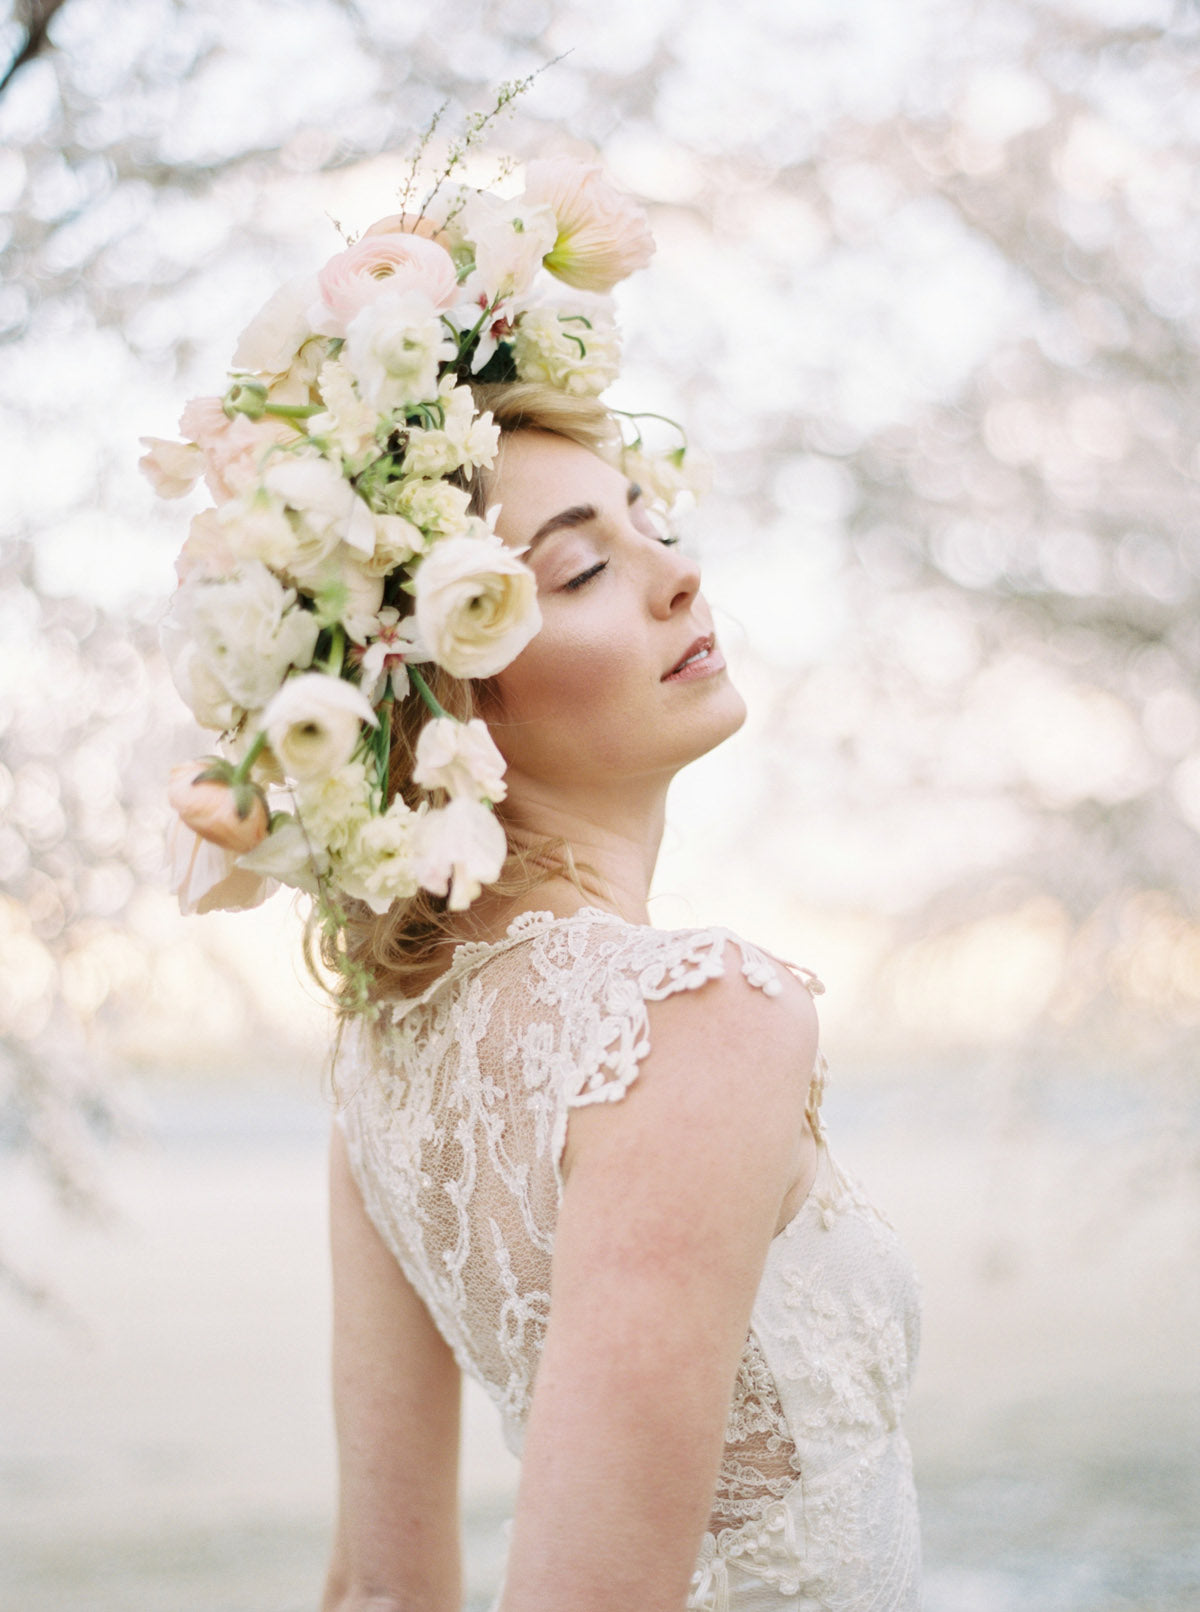 Claire Pettibone Chantilly Gown